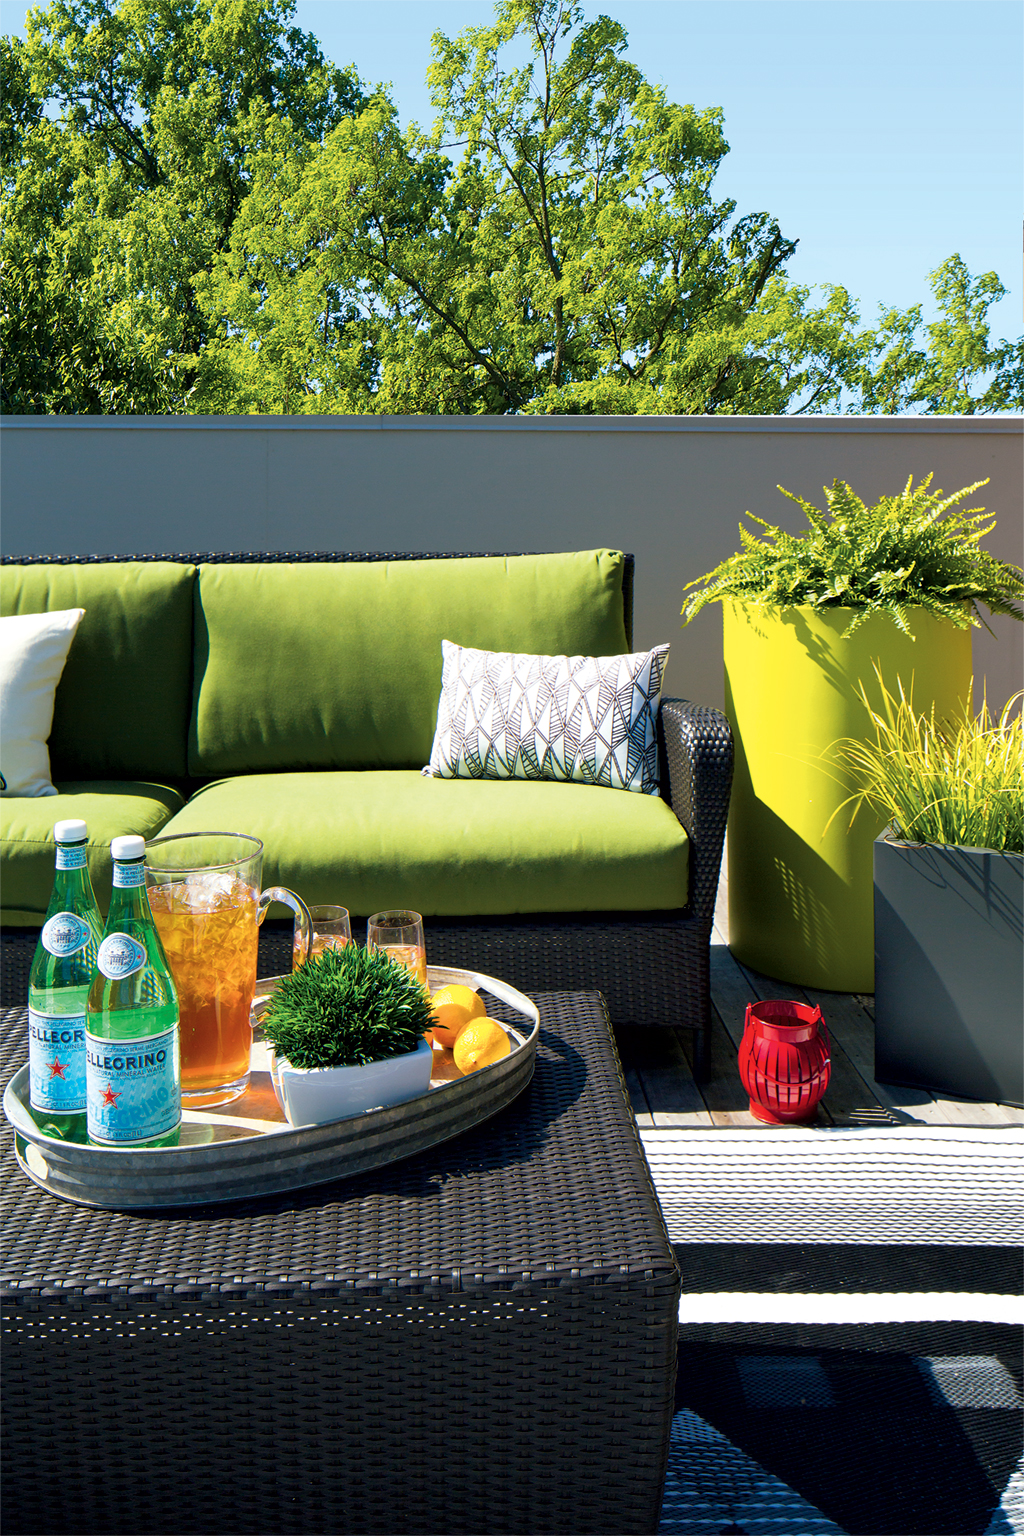 Patio furniture from Crate & Barrel and CB2 keep the outside area of this Arlington roof deck modern and fresh. Photographs by Dan Chung. (July 2016/Chesapeake Bay)